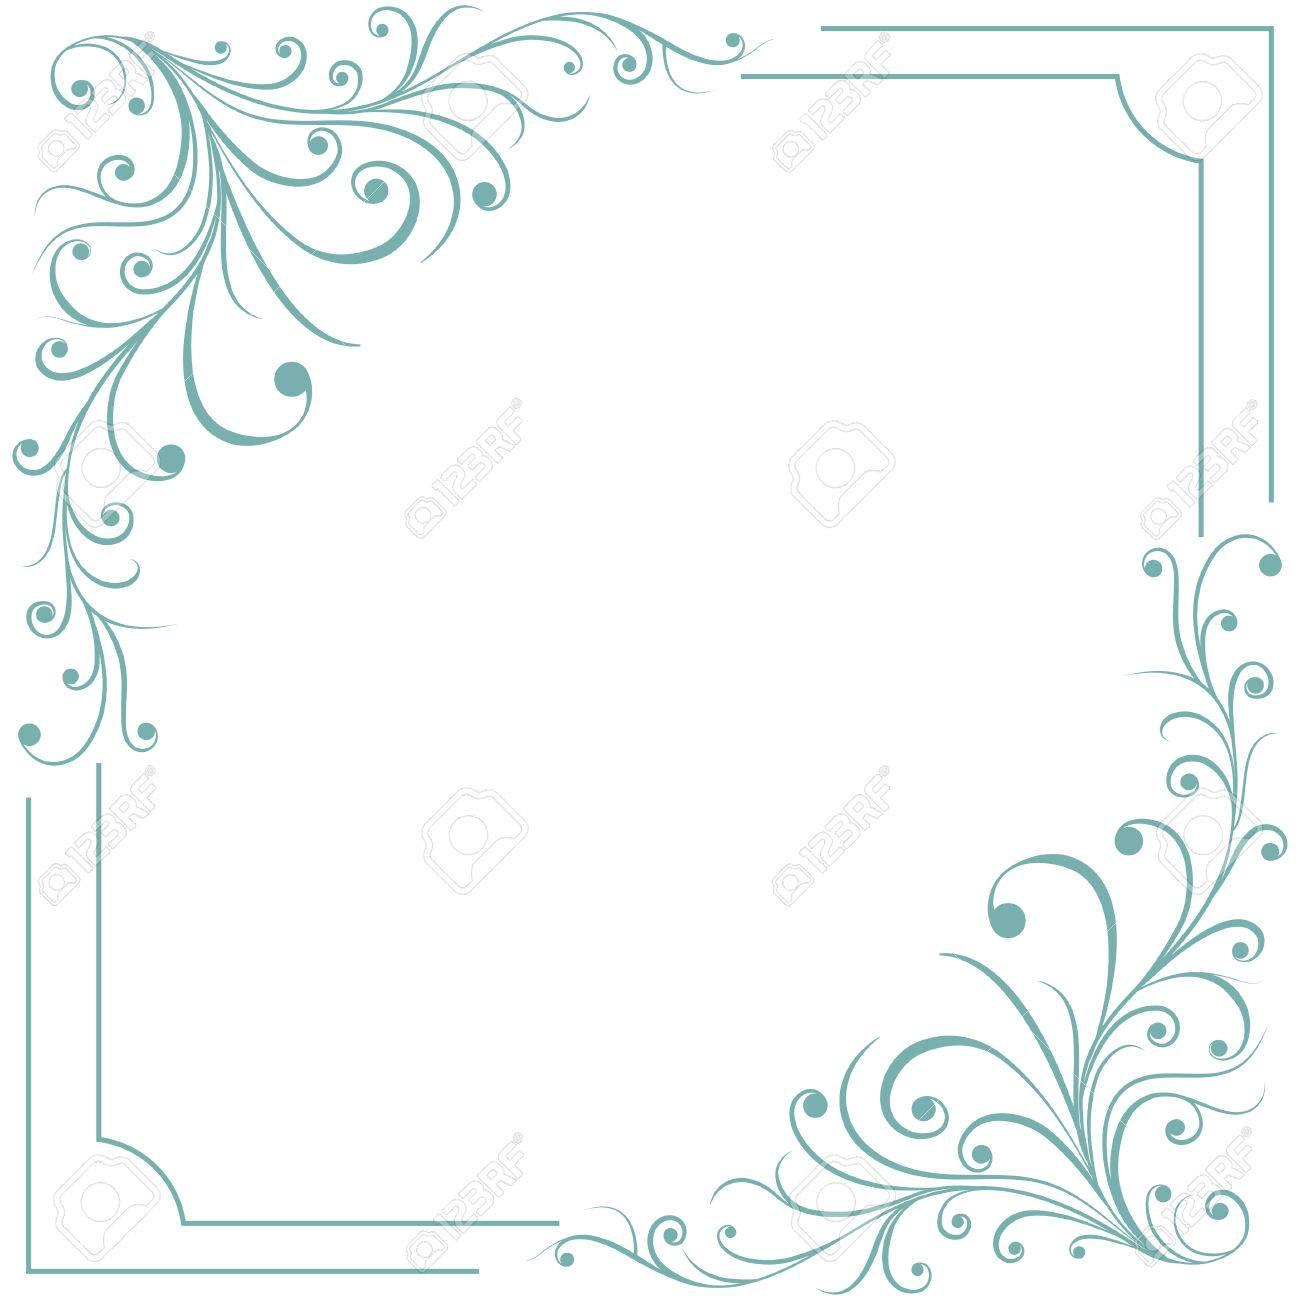 floral frame template for greeting cards invitations menus